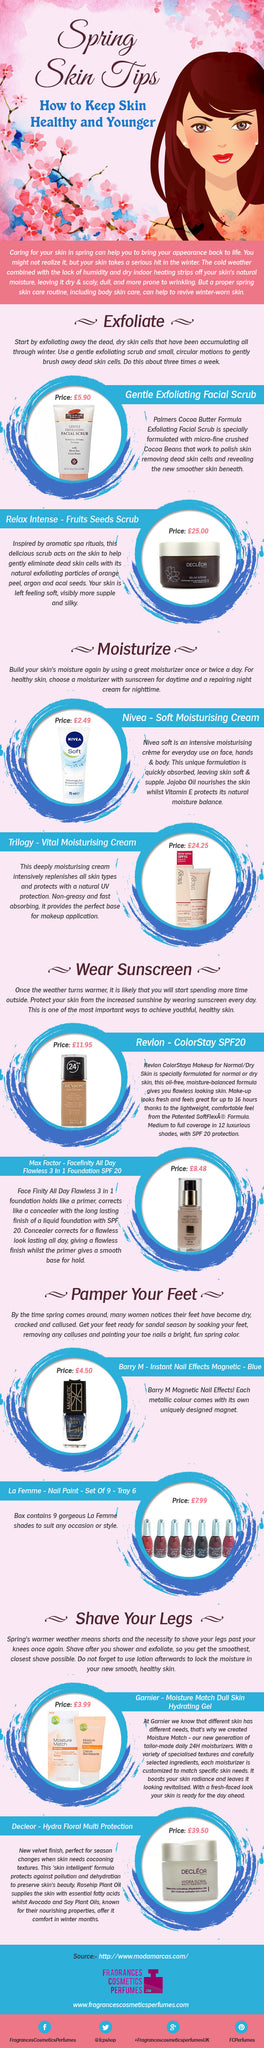 Spring youthful skin care infographic